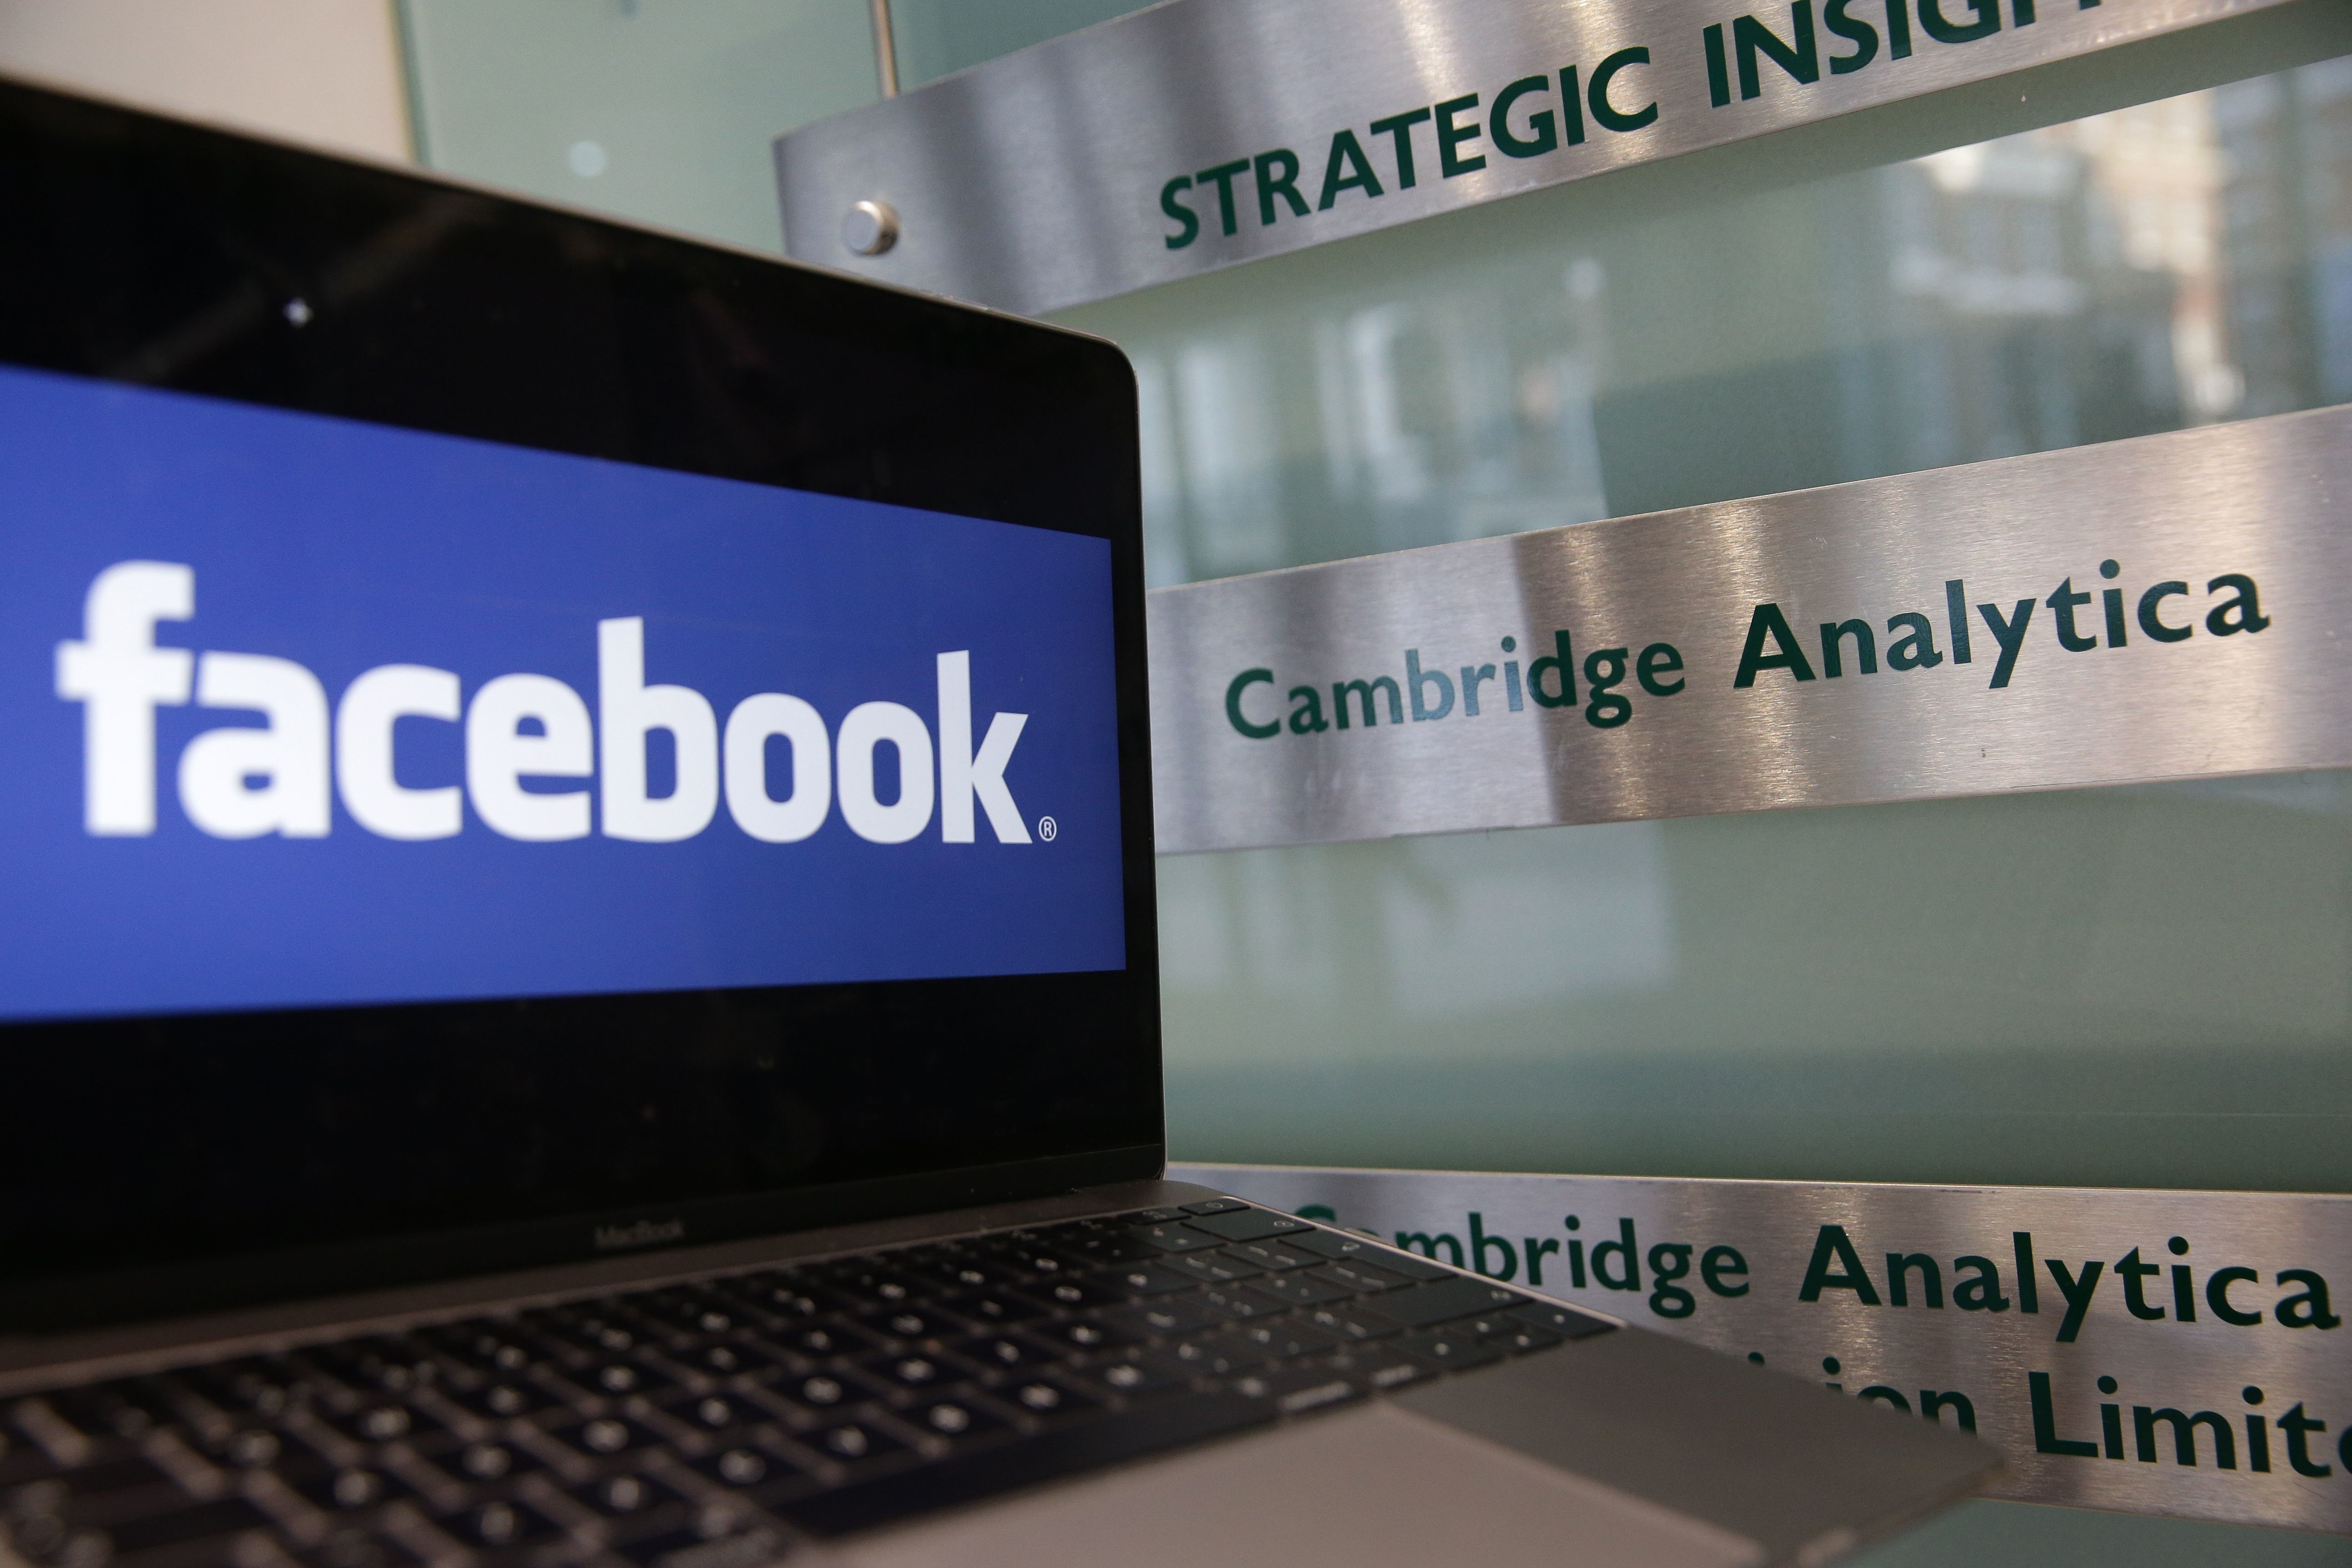 """New technologies that use data analytics to micro-target people give campaign groups the ability to connect with indiv"